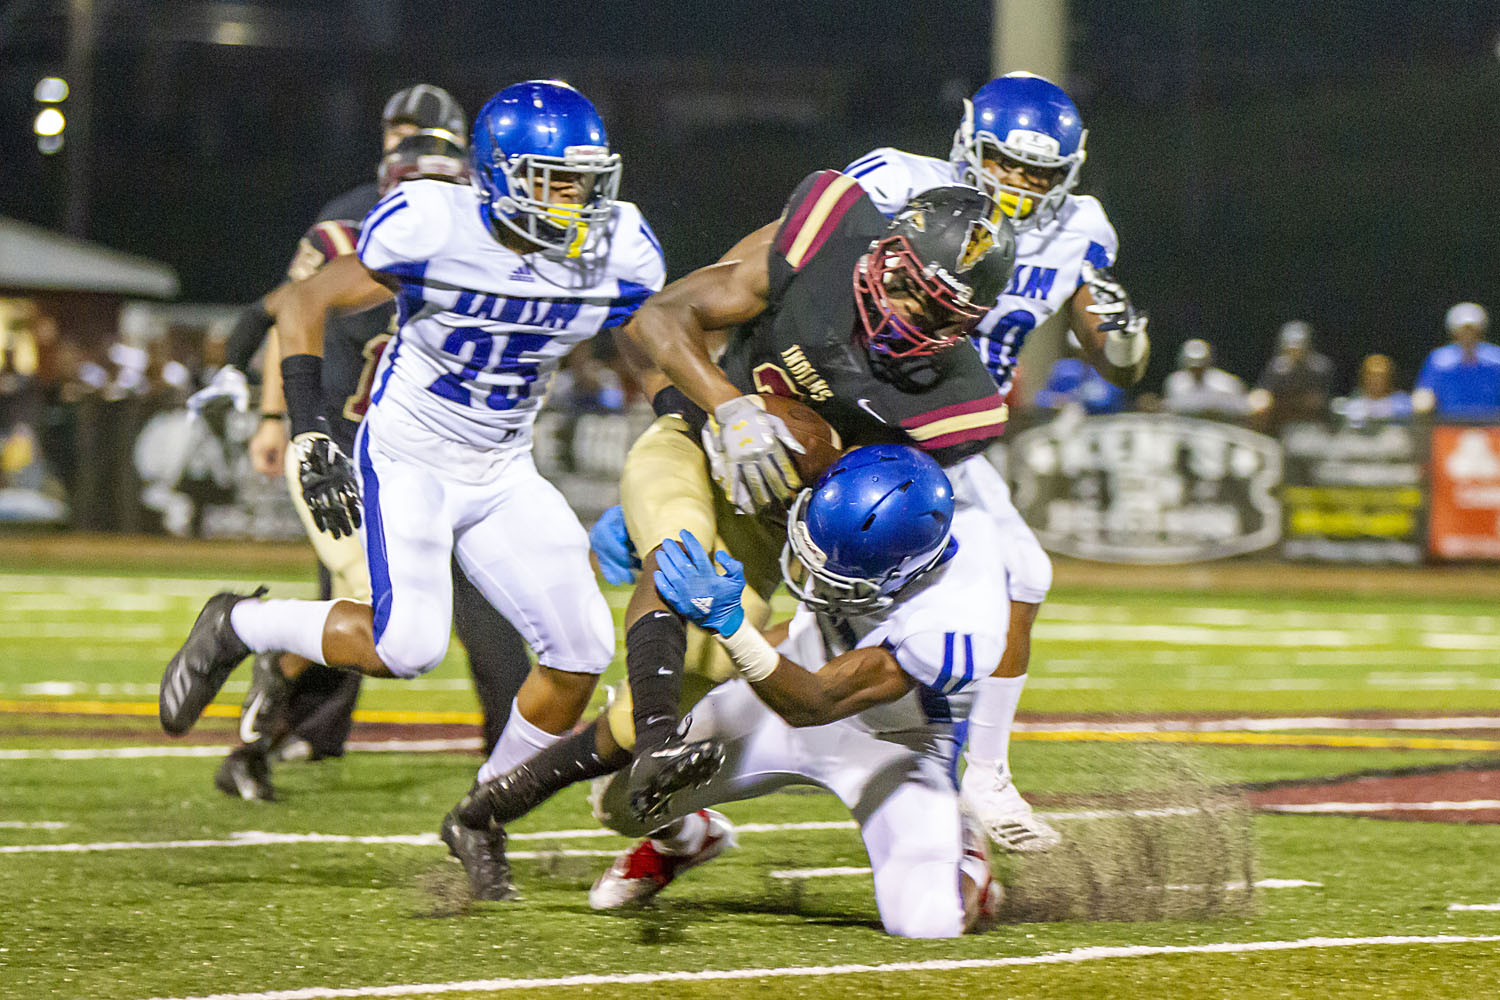 Weekly Preview: Pinson Valley vs. Albertville